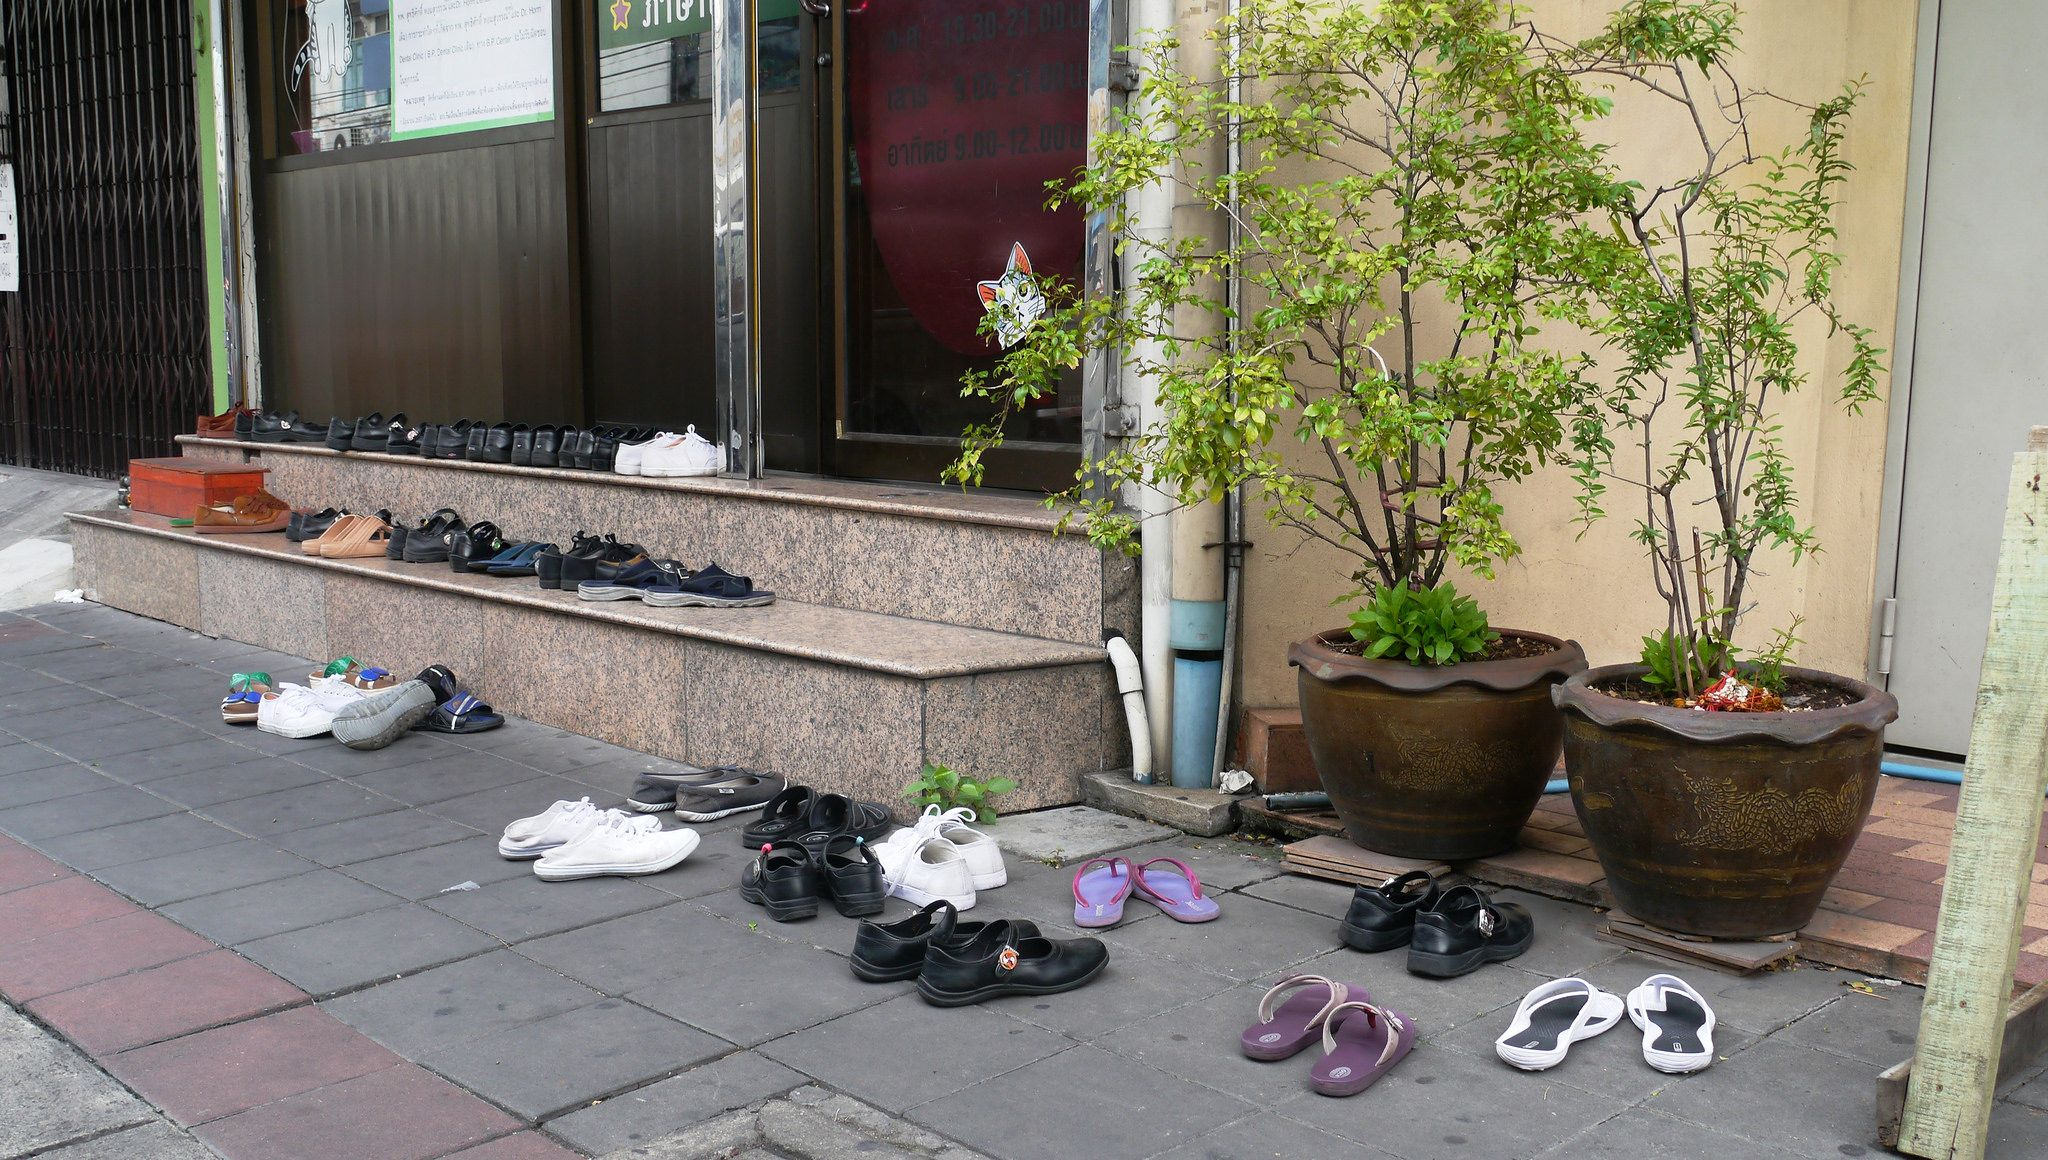 """https://flic.kr/p/oqdELa 